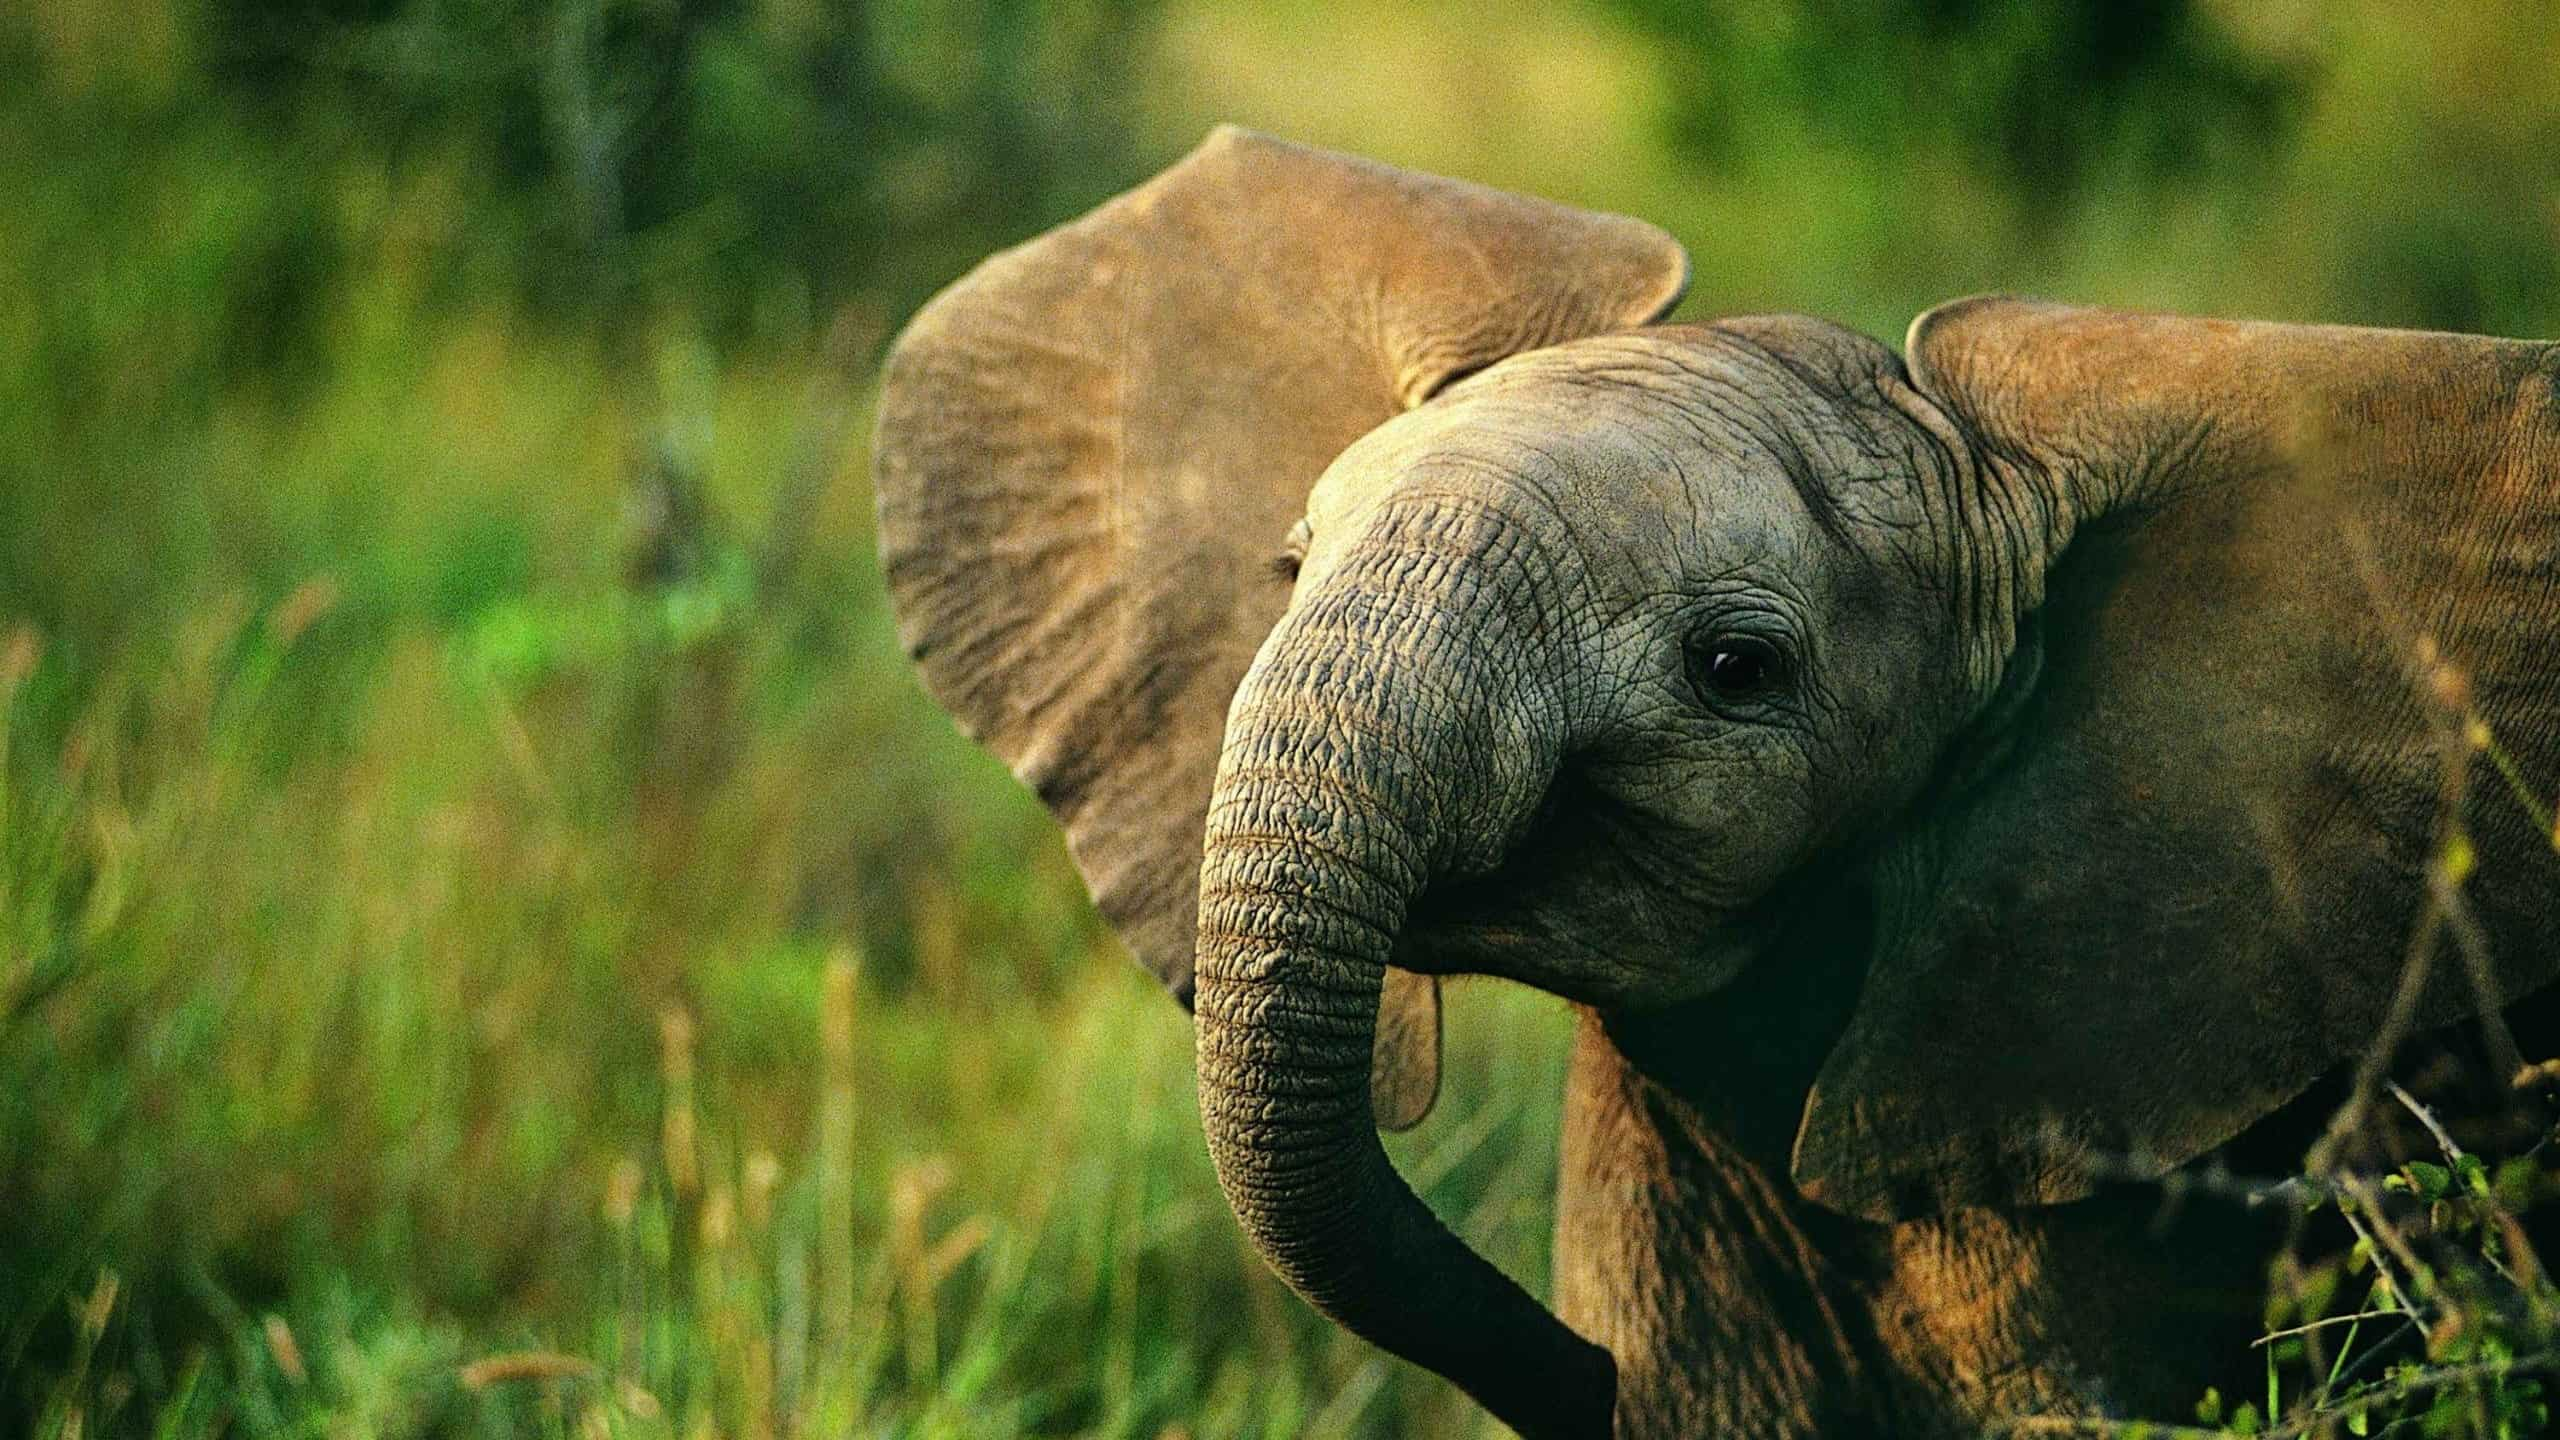 animal wallpapers hd10 - photo #41